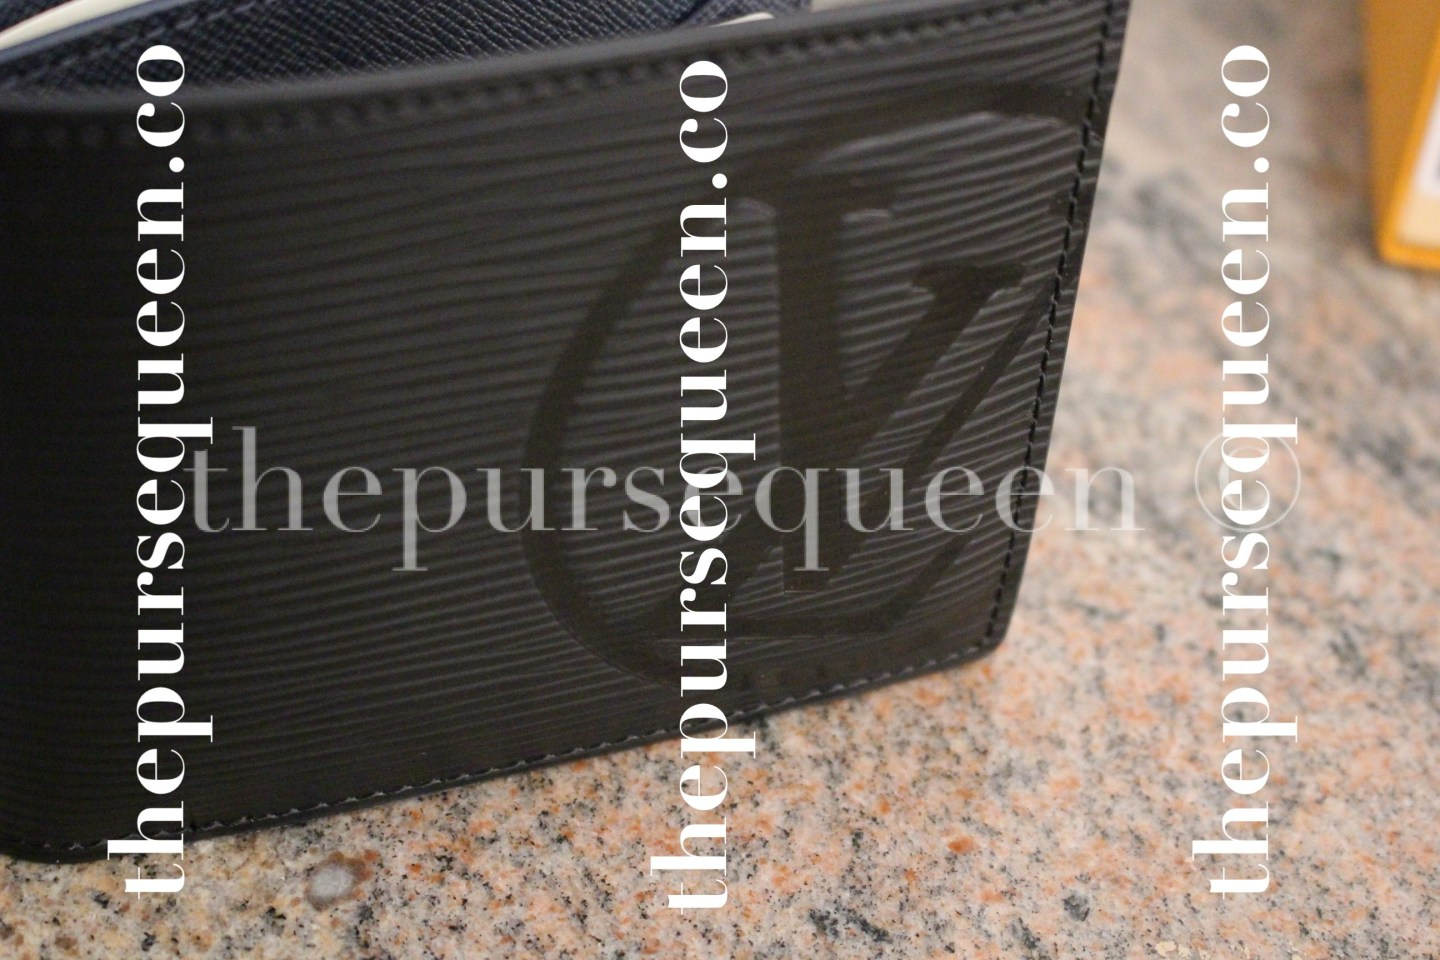 Louis Vuitton Multiple Epi Initials Replica Wallet Closeup